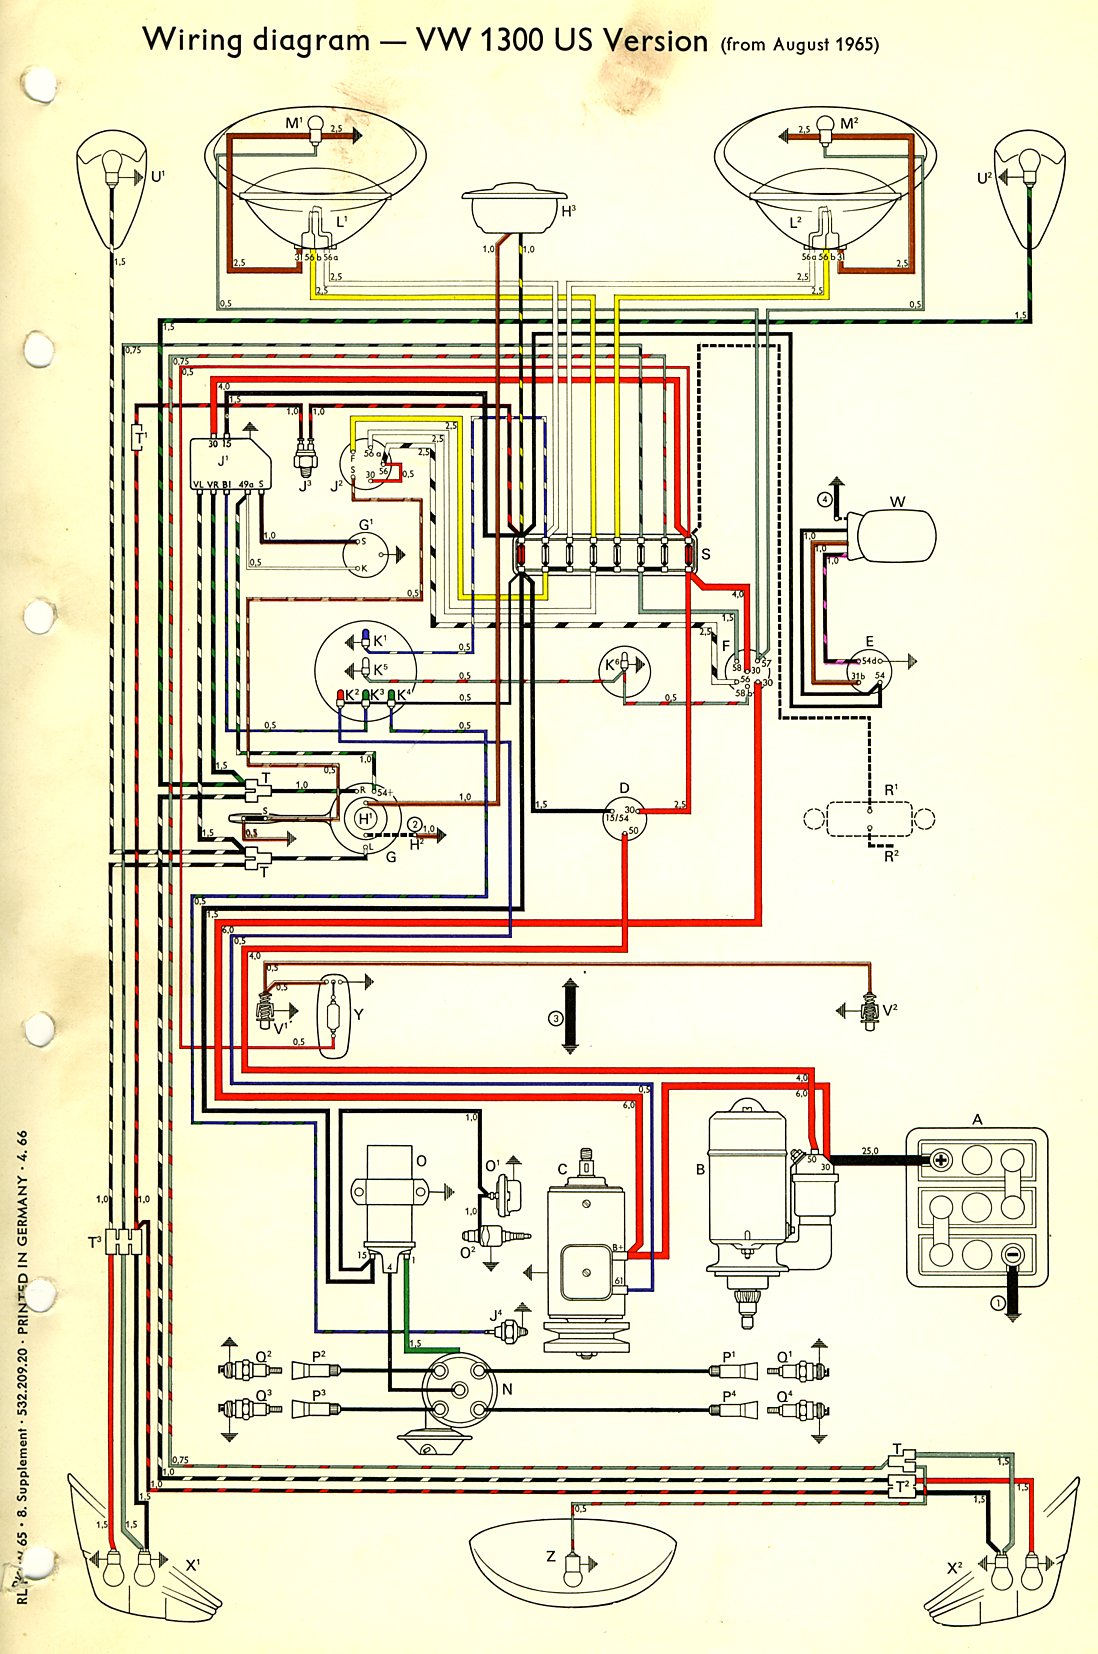 1971 Vw Super Beetle Wiring Diagram Electrical Work 1973 Thesamba Com Type 1 Diagrams Rh 1972